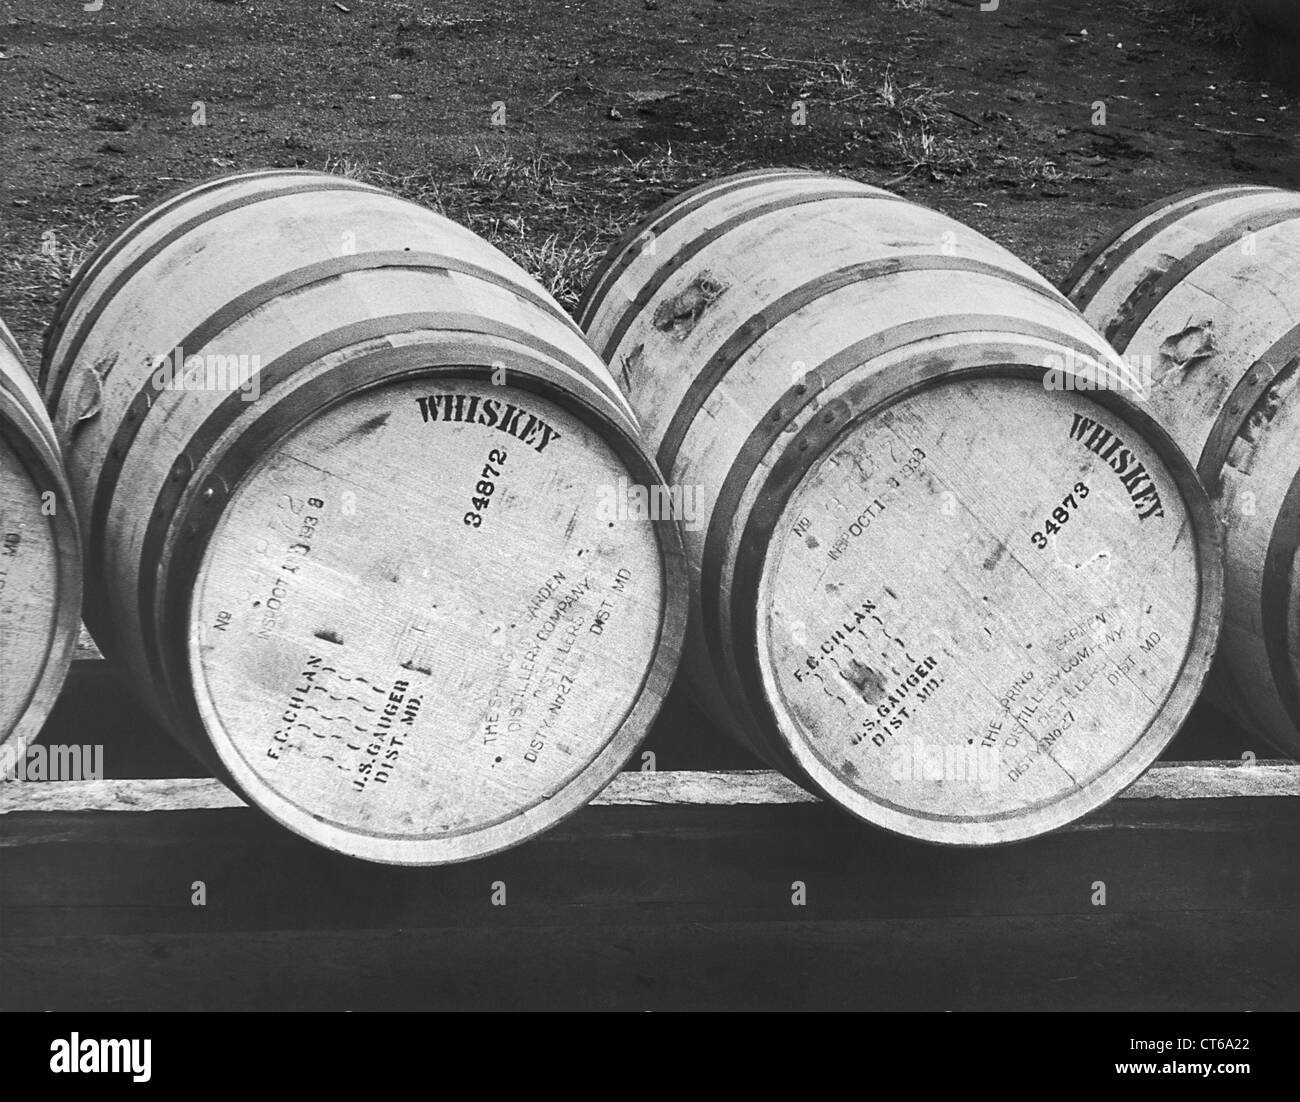 Close-up of bonded whiskey barrels - Stock Image